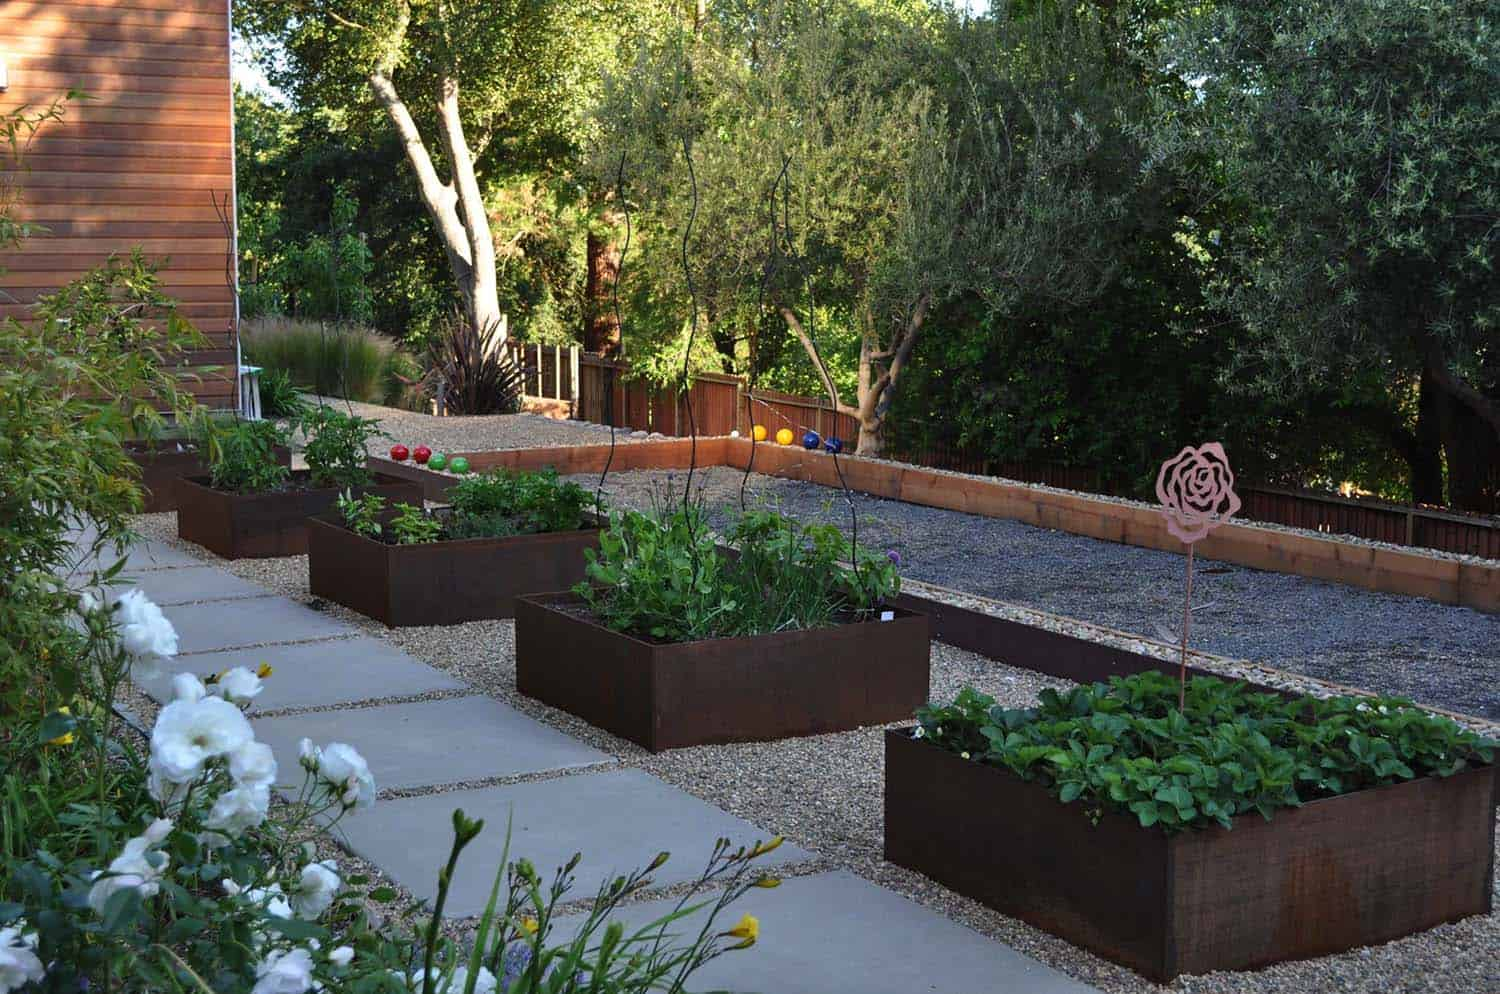 30 Amazing Ideas For Growing A Vegetable Garden In Your ... on Outdoor Vegetable Garden Ideas id=49811